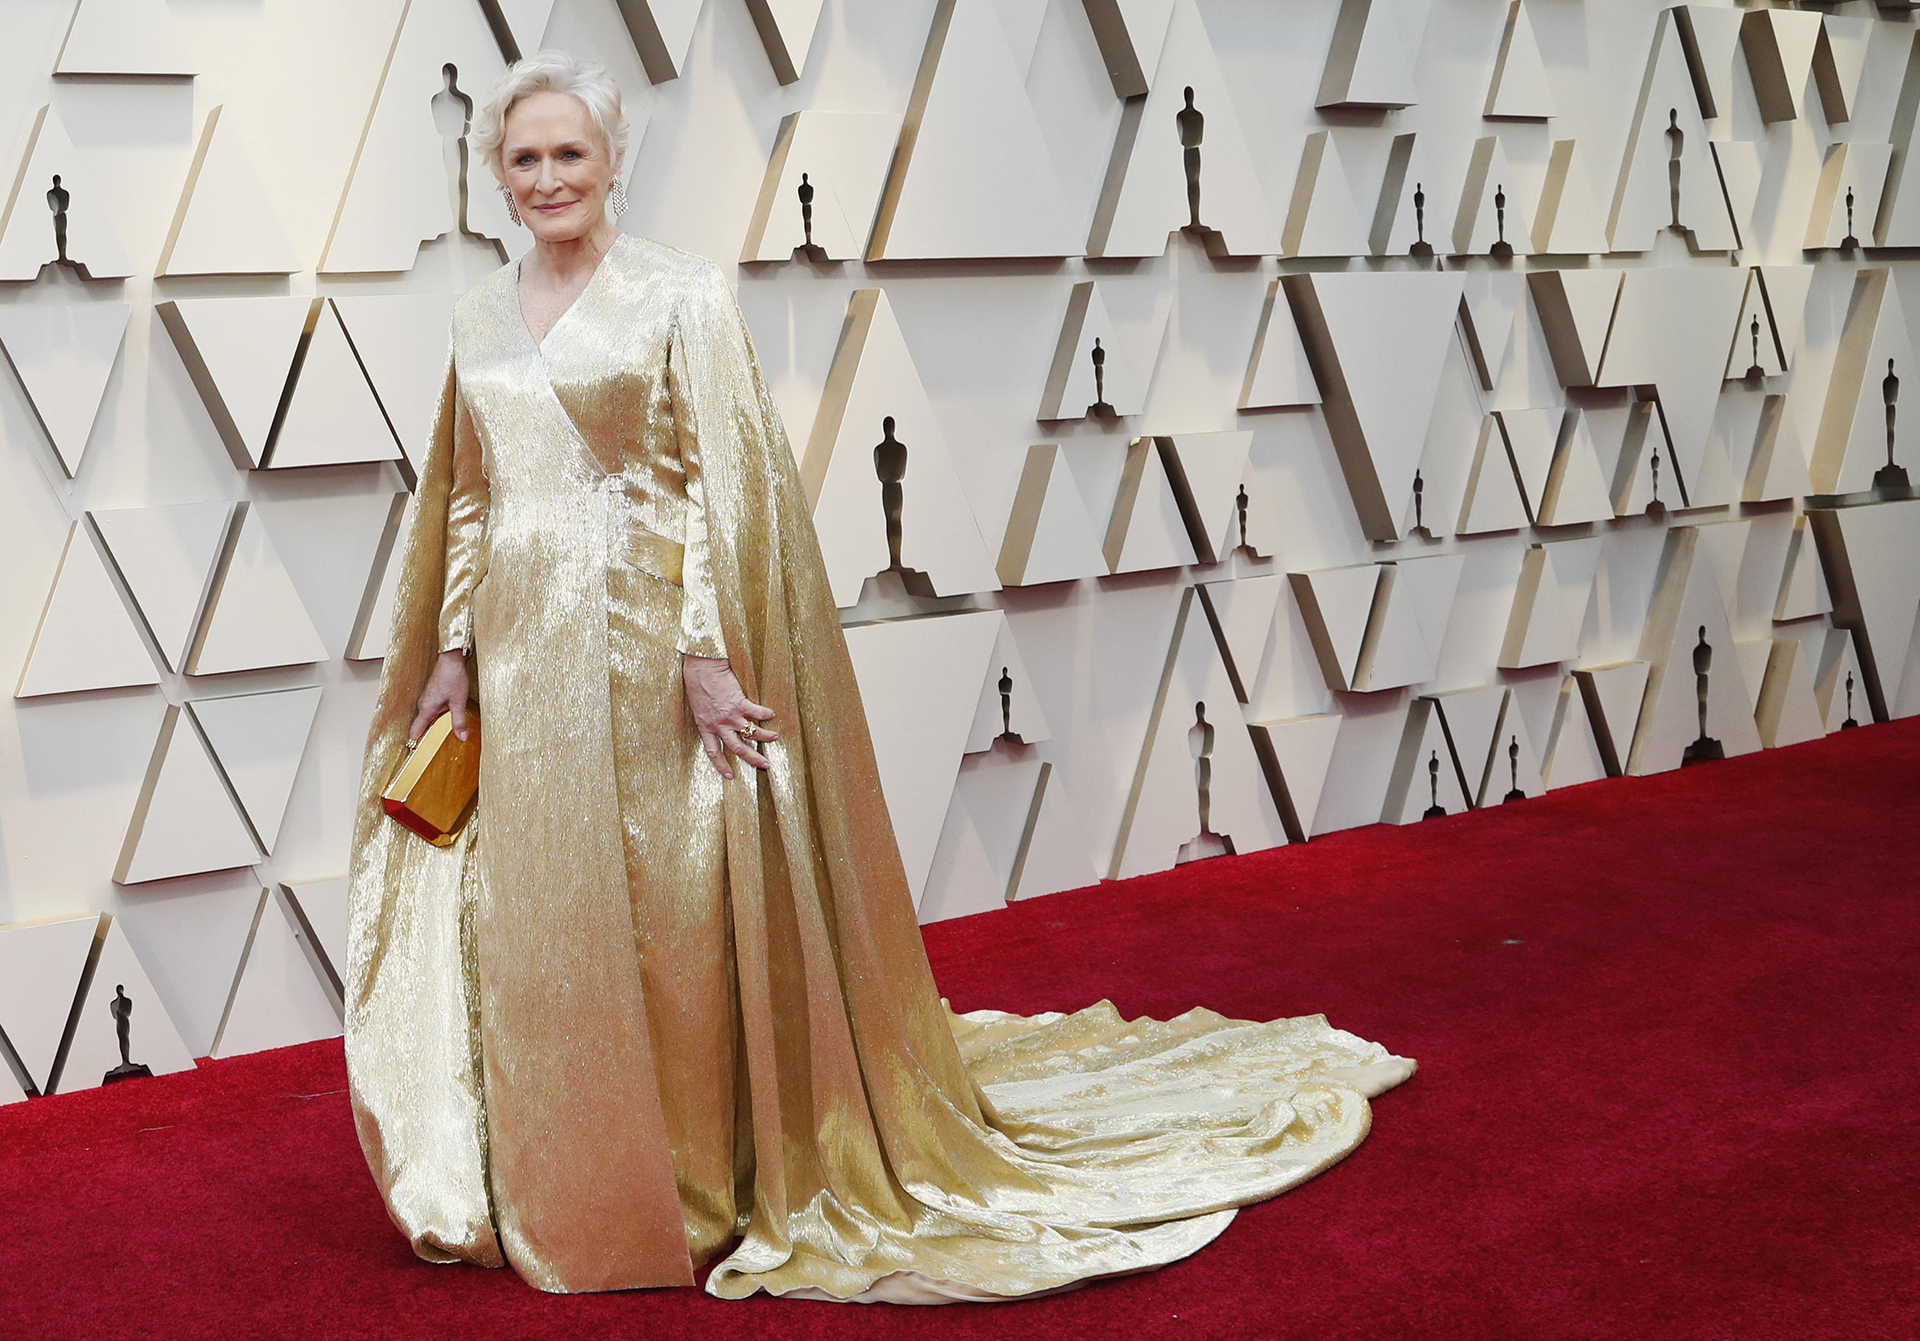 91st Academy Awards - Oscars Arrivals - Red Carpet - Hollywood, Los Angeles, California, U.S., February 24, 2019. Glenn Close poses. REUTERS/Mario Anzuoni